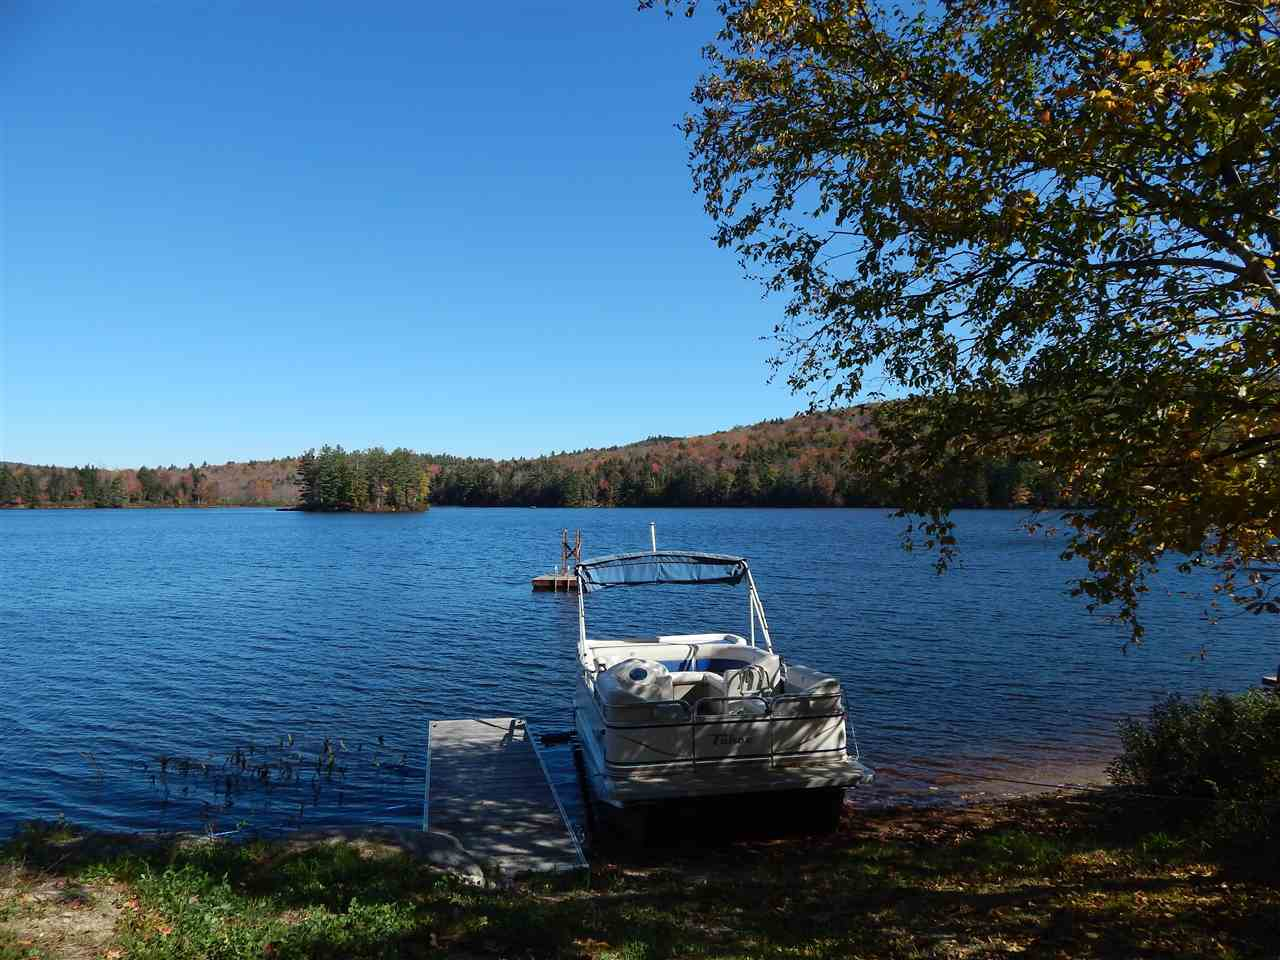 SPRINGFIELD NHHomes for sale